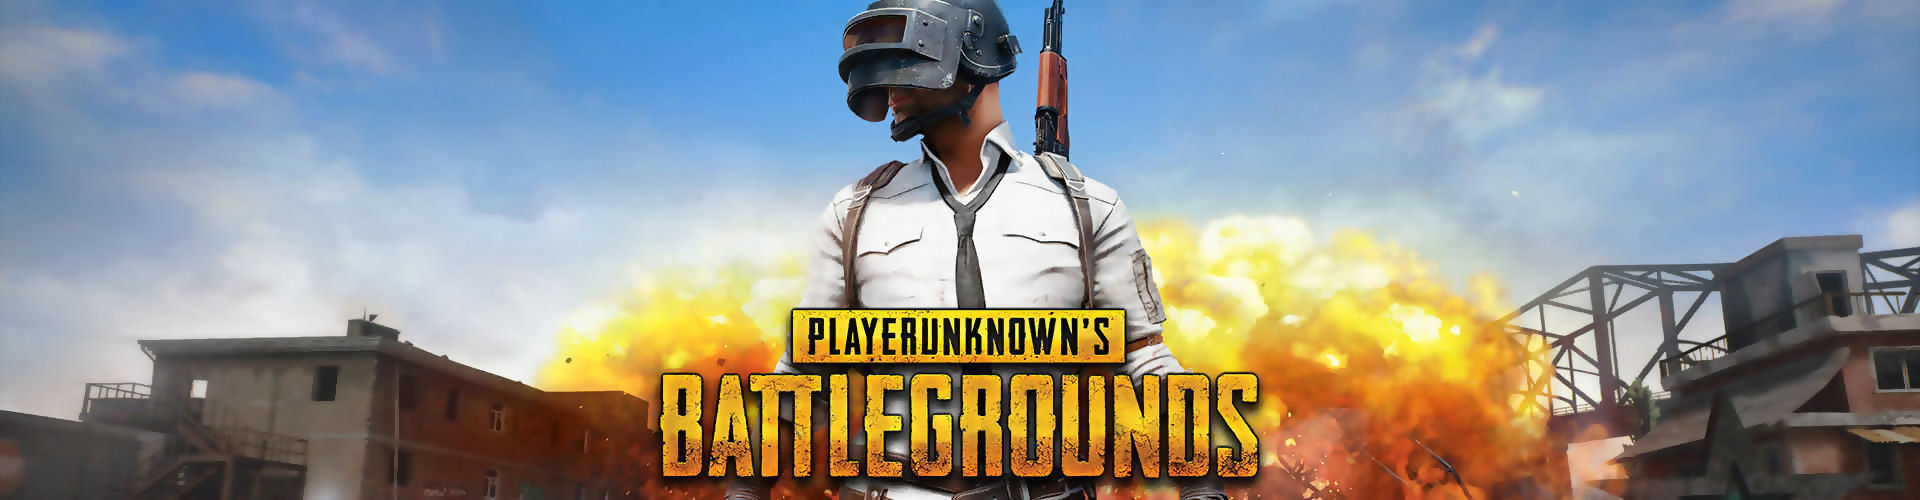 Check out the average score of PUBG